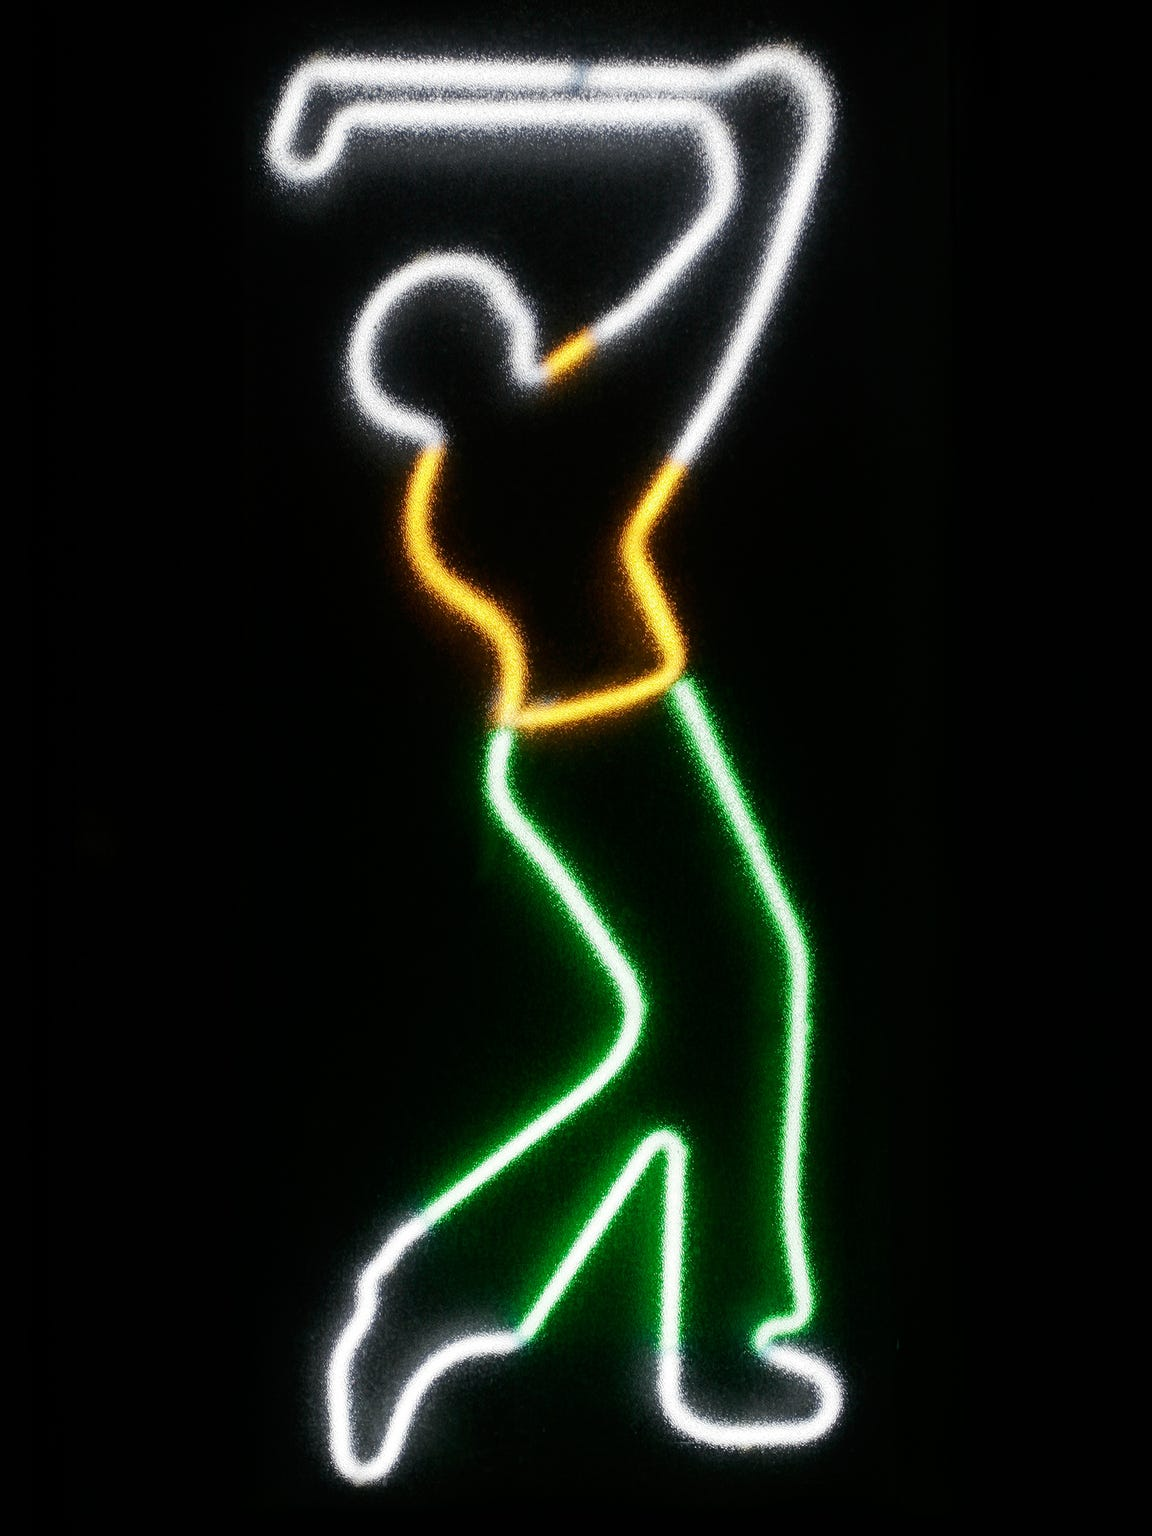 Play glow golf to benefit Discovery Center at Murfree